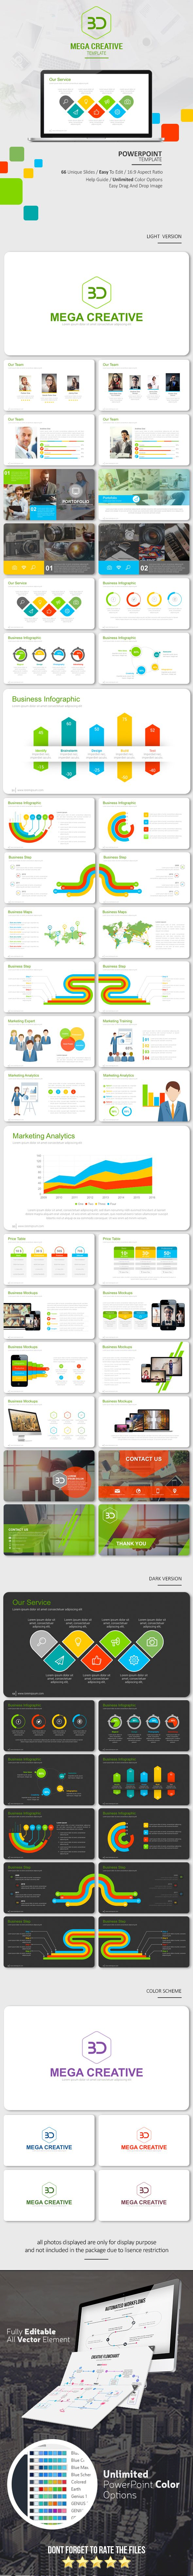 Mega Creative PowerPoint Template. Download here: http://graphicriver.net/item/mega-creative-powerpoint-template/16107816?ref=ksioks